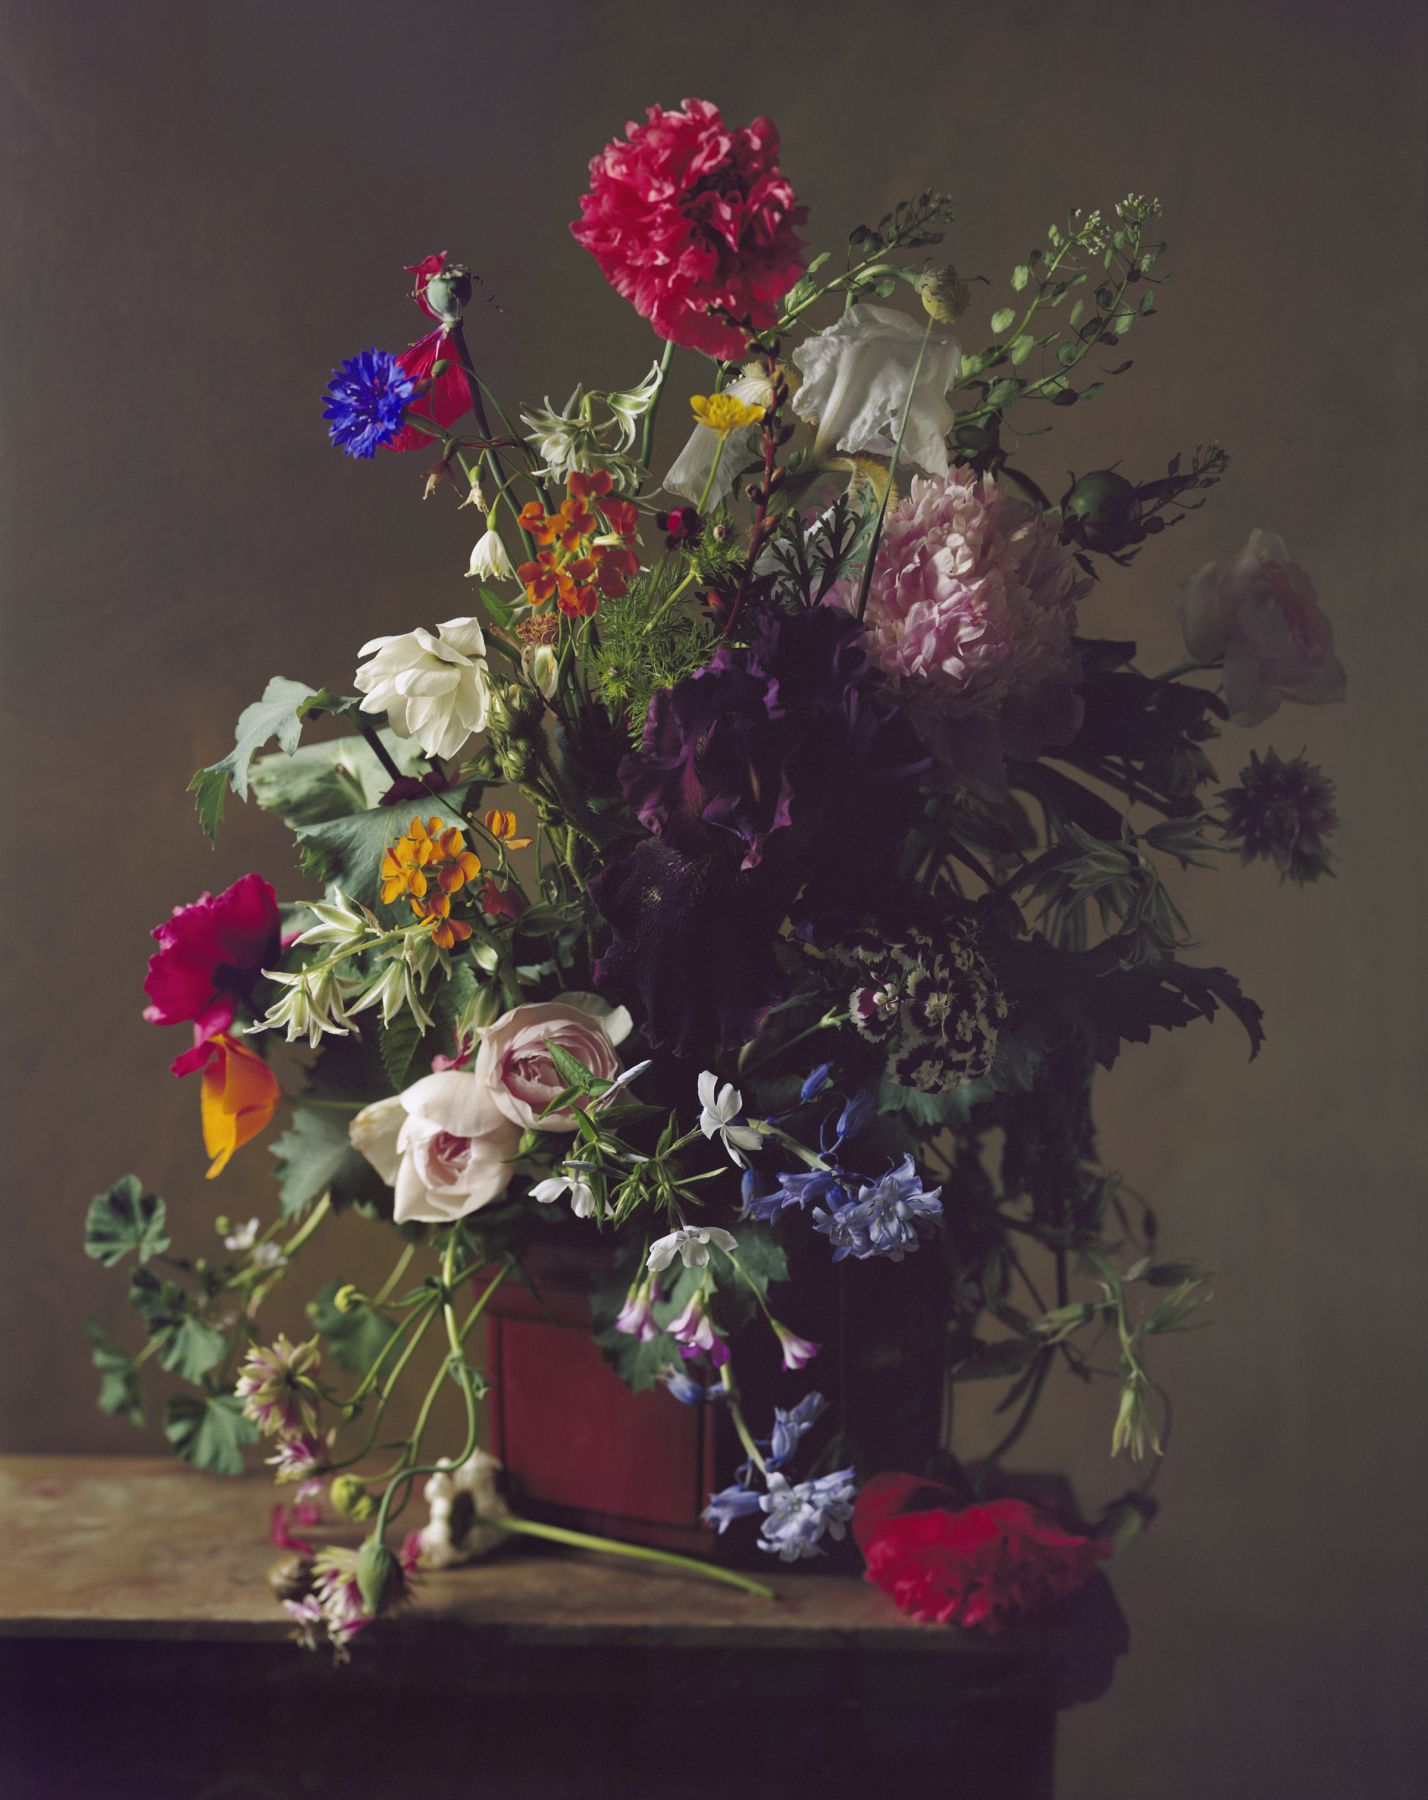 Photograph by Sharon Core titled 1874 from the series 1606-1907 of a floral still life arranged in the style of a classical painting